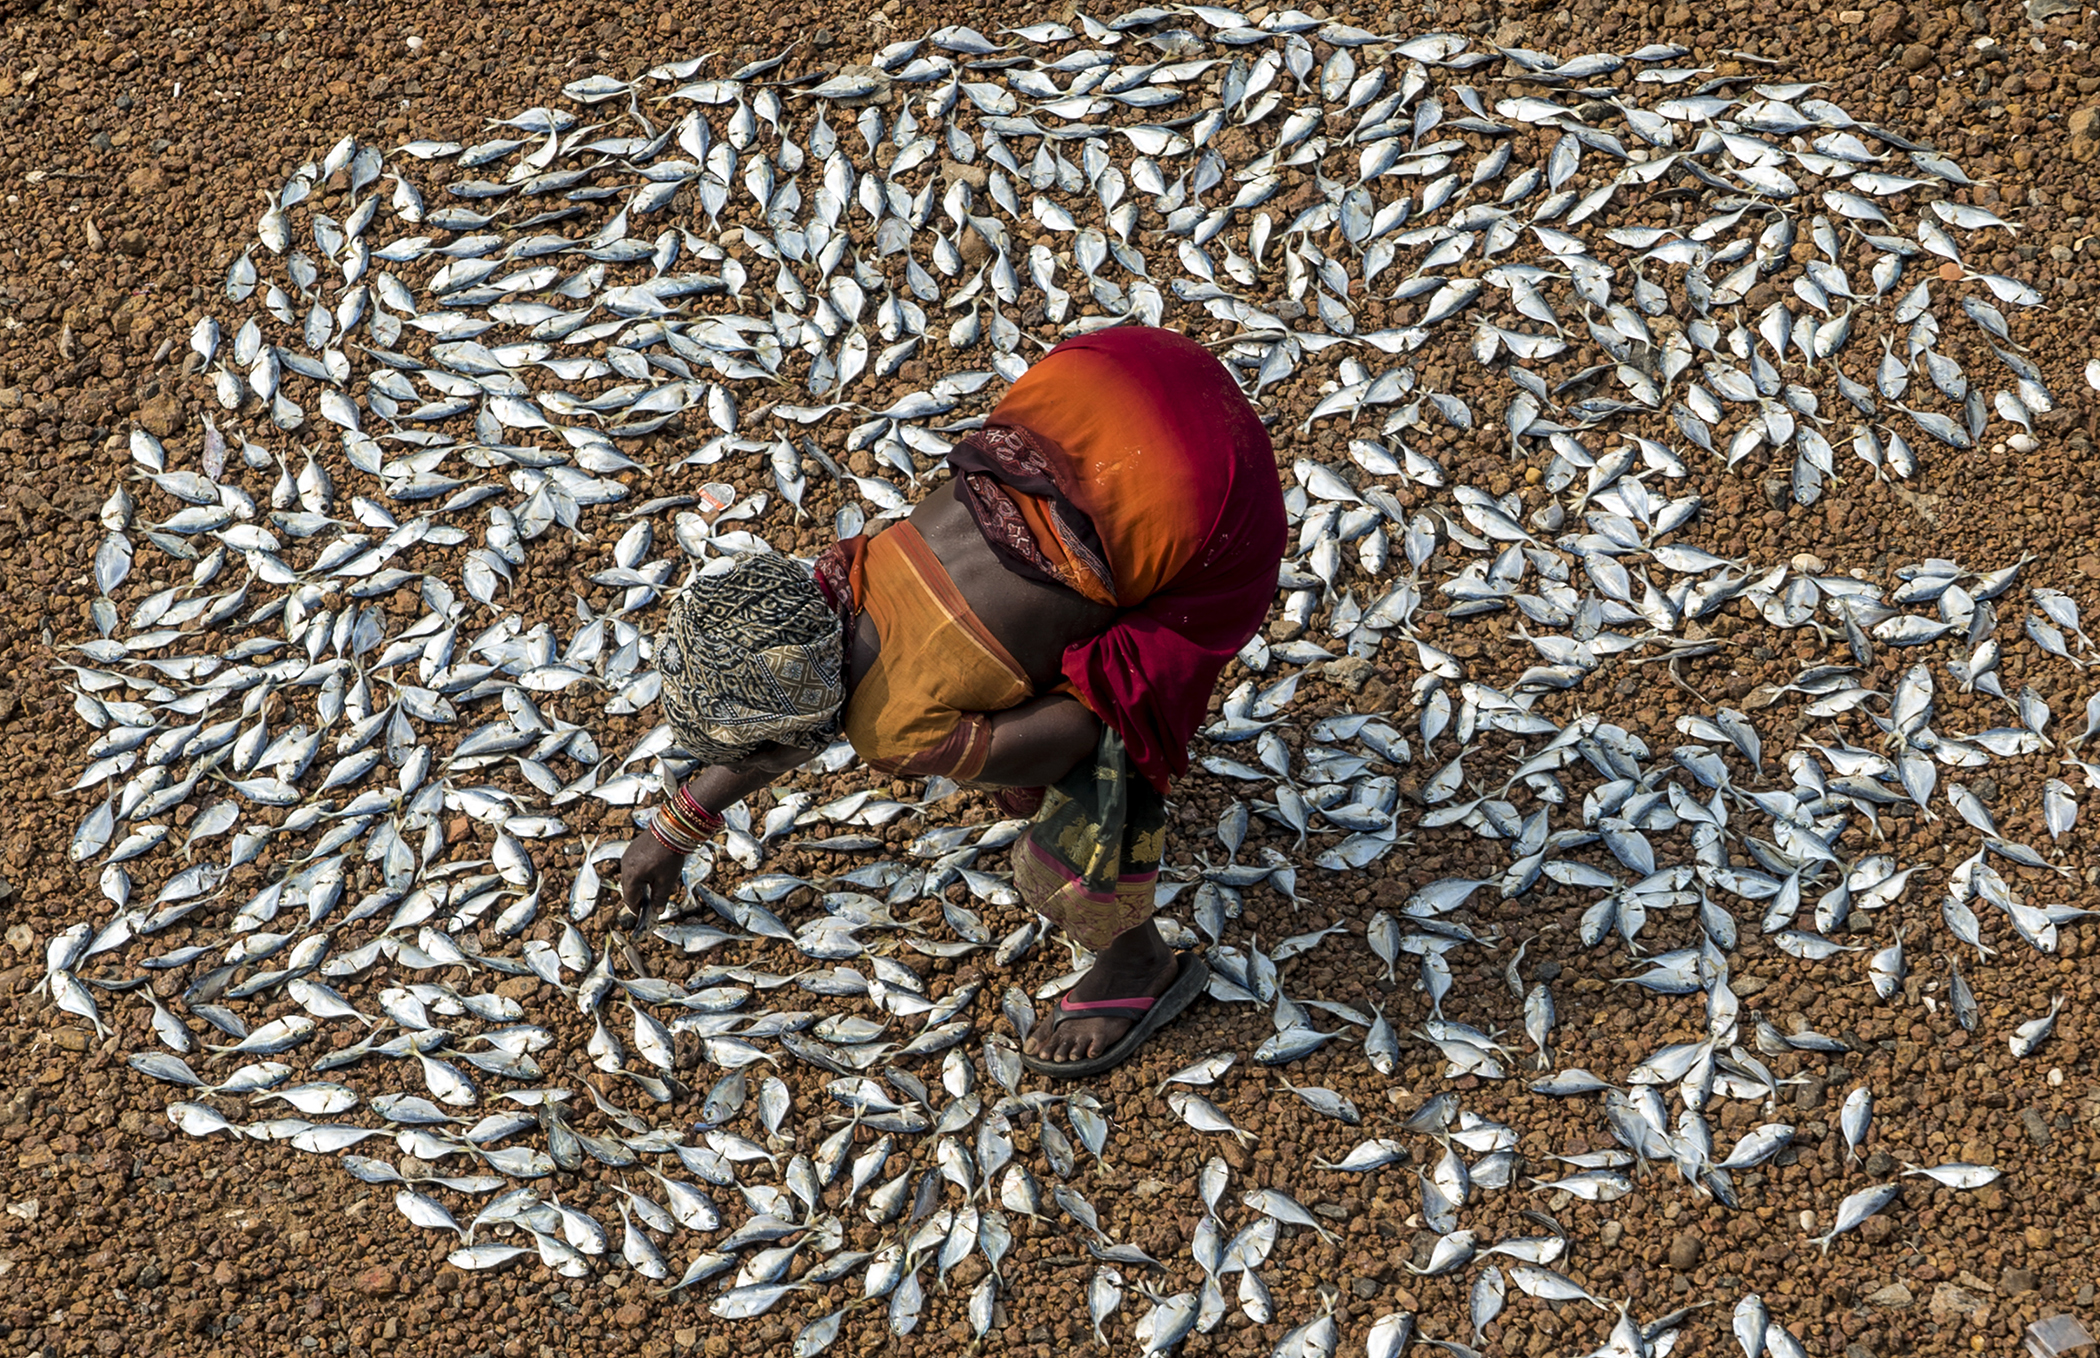 A Tamil woman sets a handful of small fish to dry in the midday Indian sun in Pulicat, India. The majority of this small catch will go to make chicken feed.